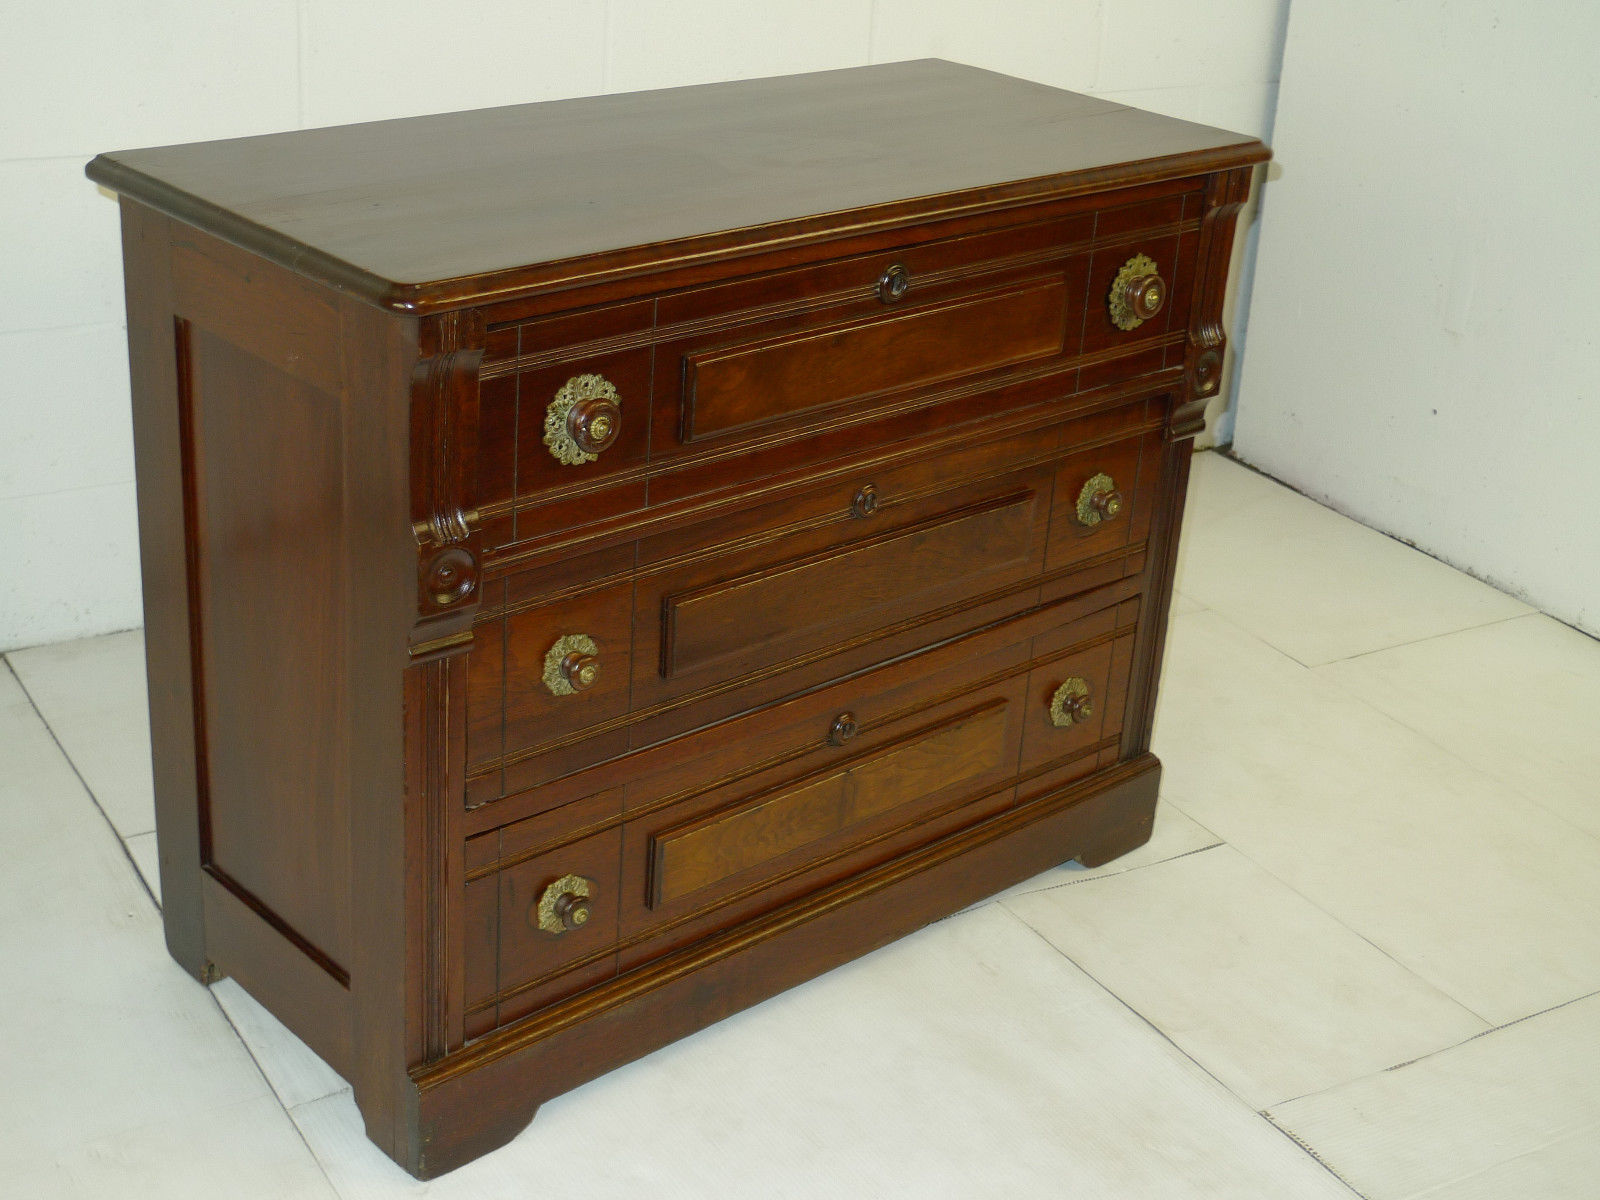 Victorian Eastlake Period Walnut Chest Of Drawers